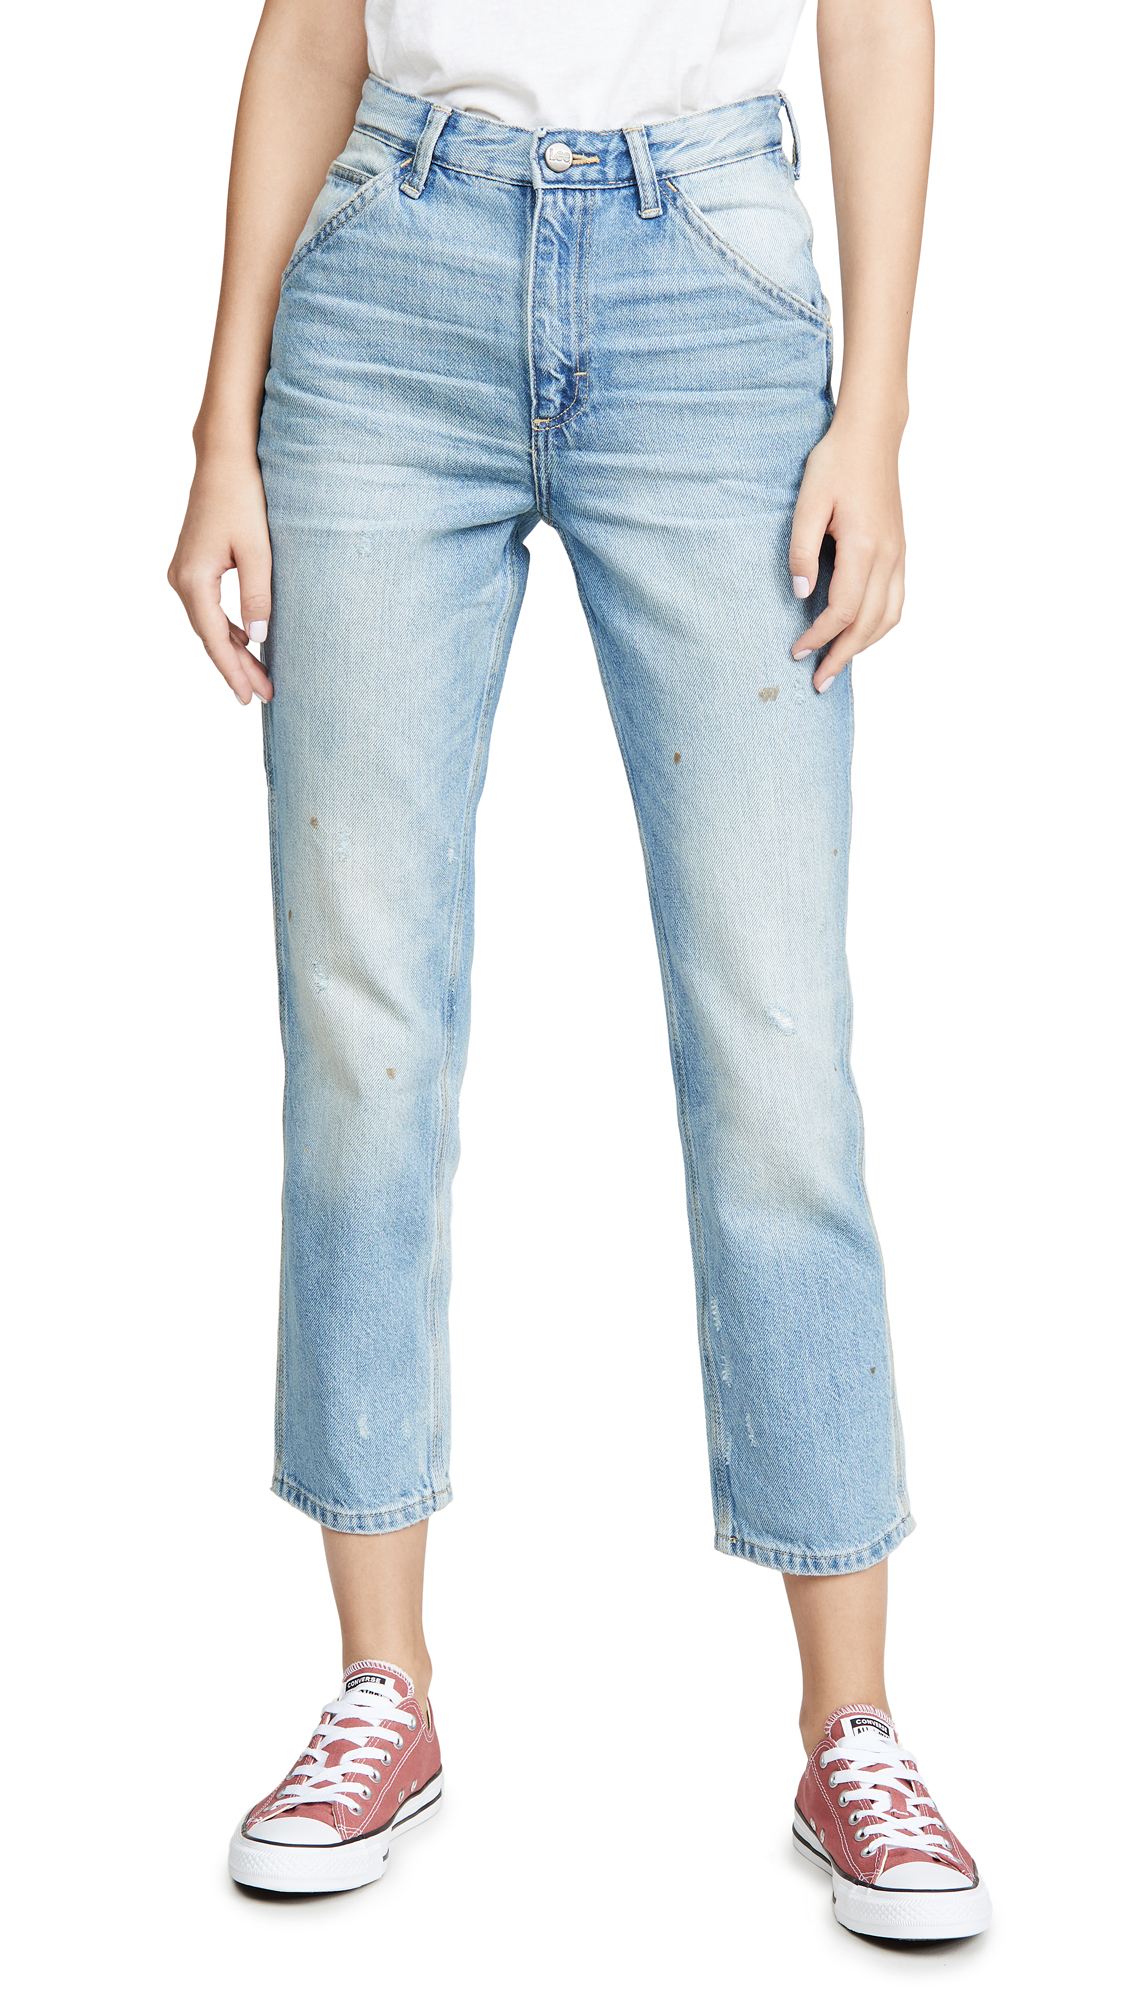 Lee Vintage Modern High Rise Dungaree Ankle Jeans - Authentic Fade